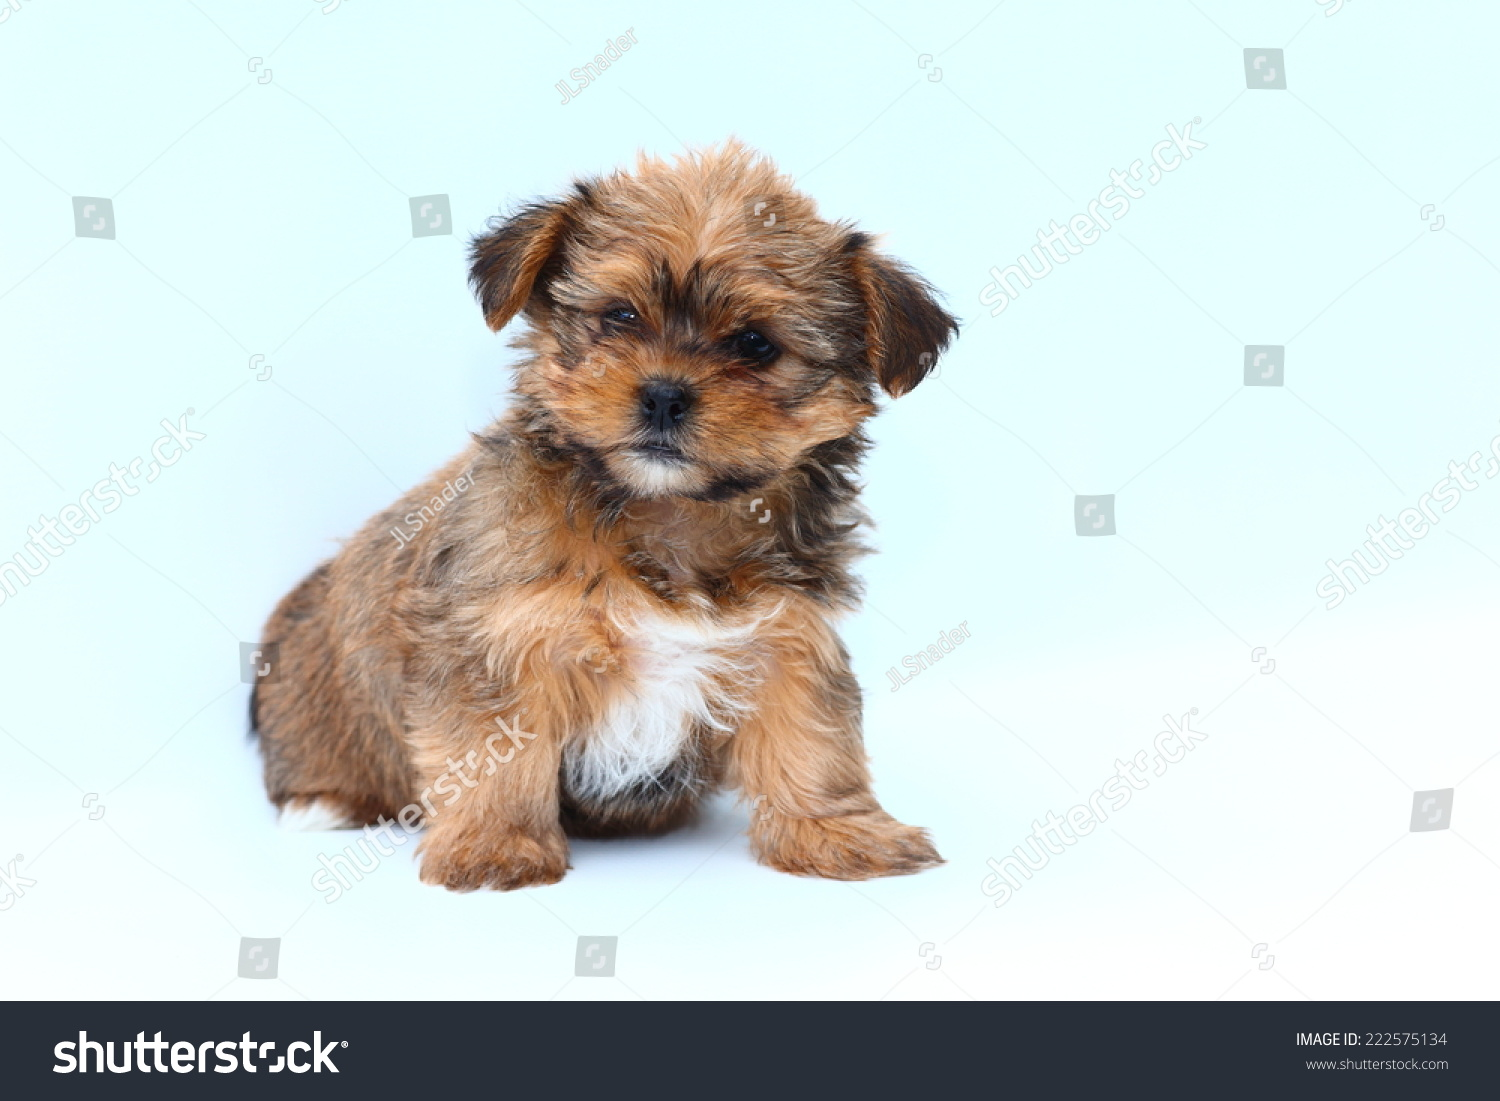 Fluffy Small Shih Tzu Yorkshire Terrier Mixed Stock Photo Edit Now